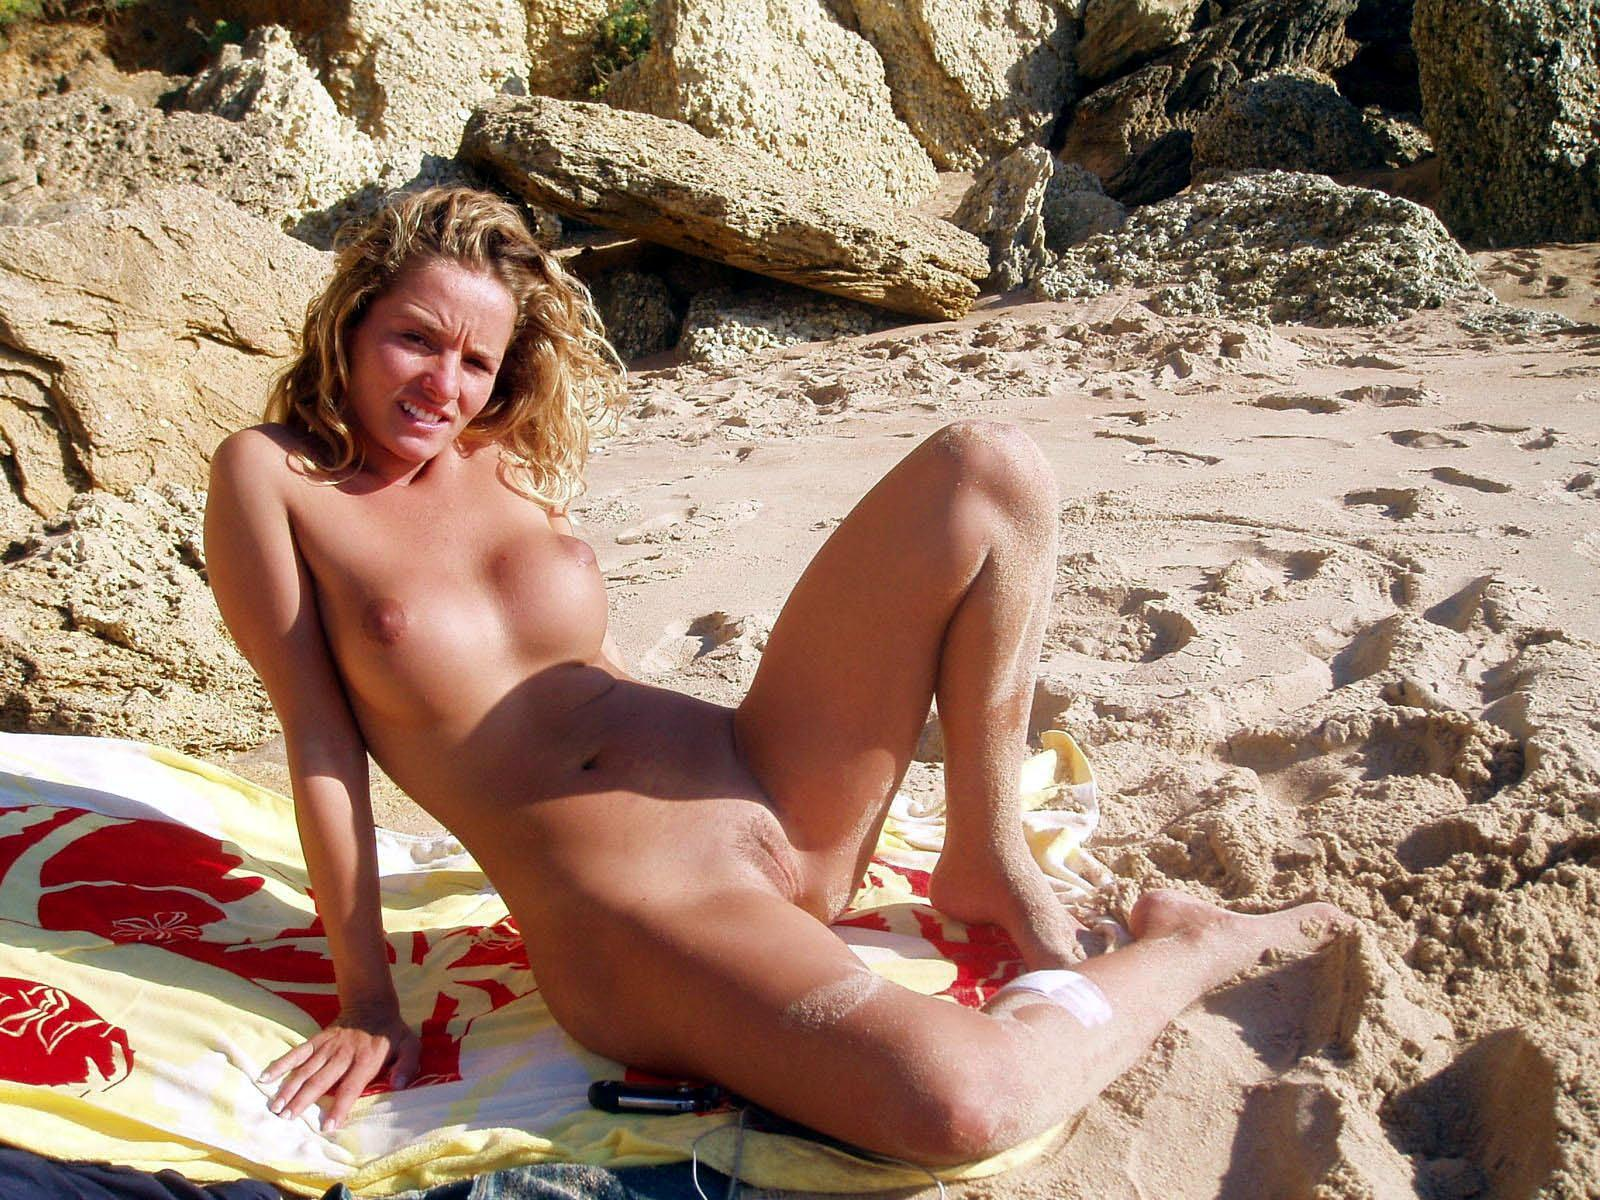 Hot naked blonde does not want to be disturbed